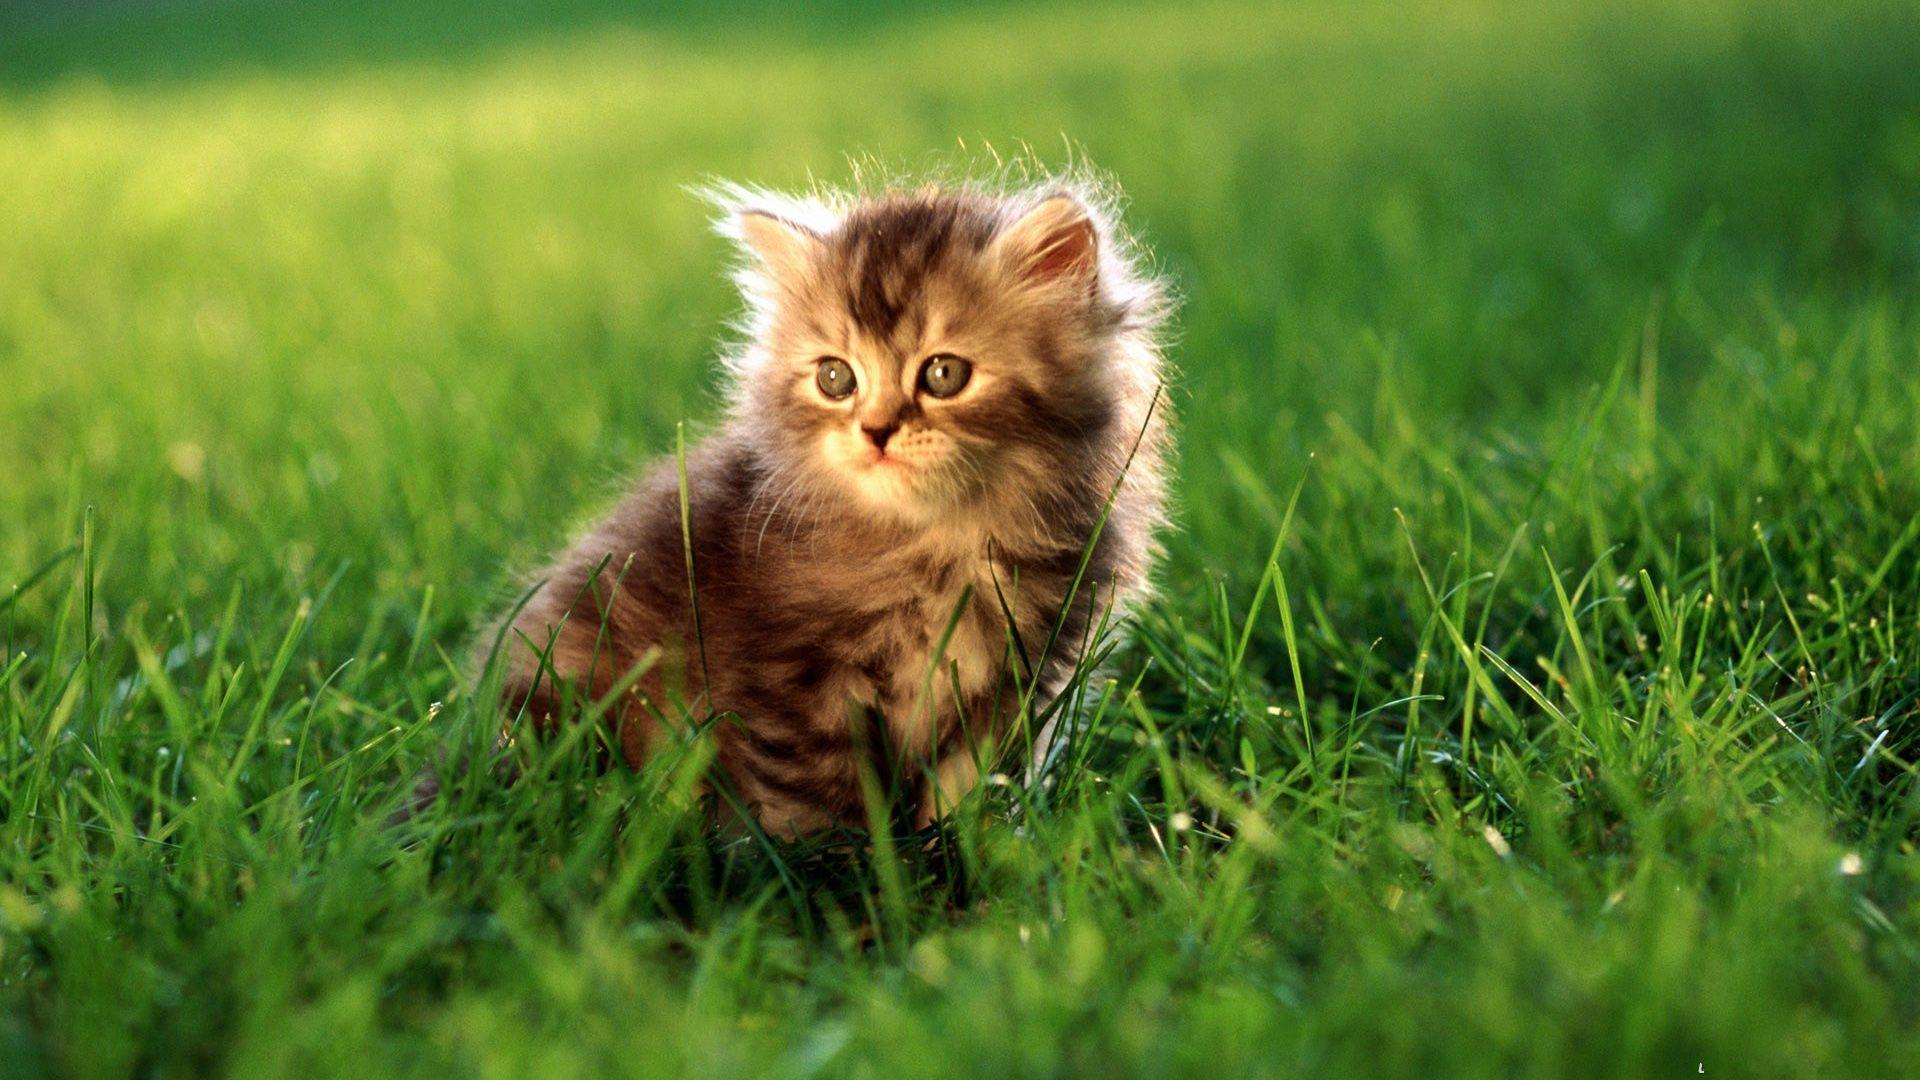 Animal Images Hd Cute Animals Displar Animal Wallpapers: Cool Wallpapers Of Cute Animals